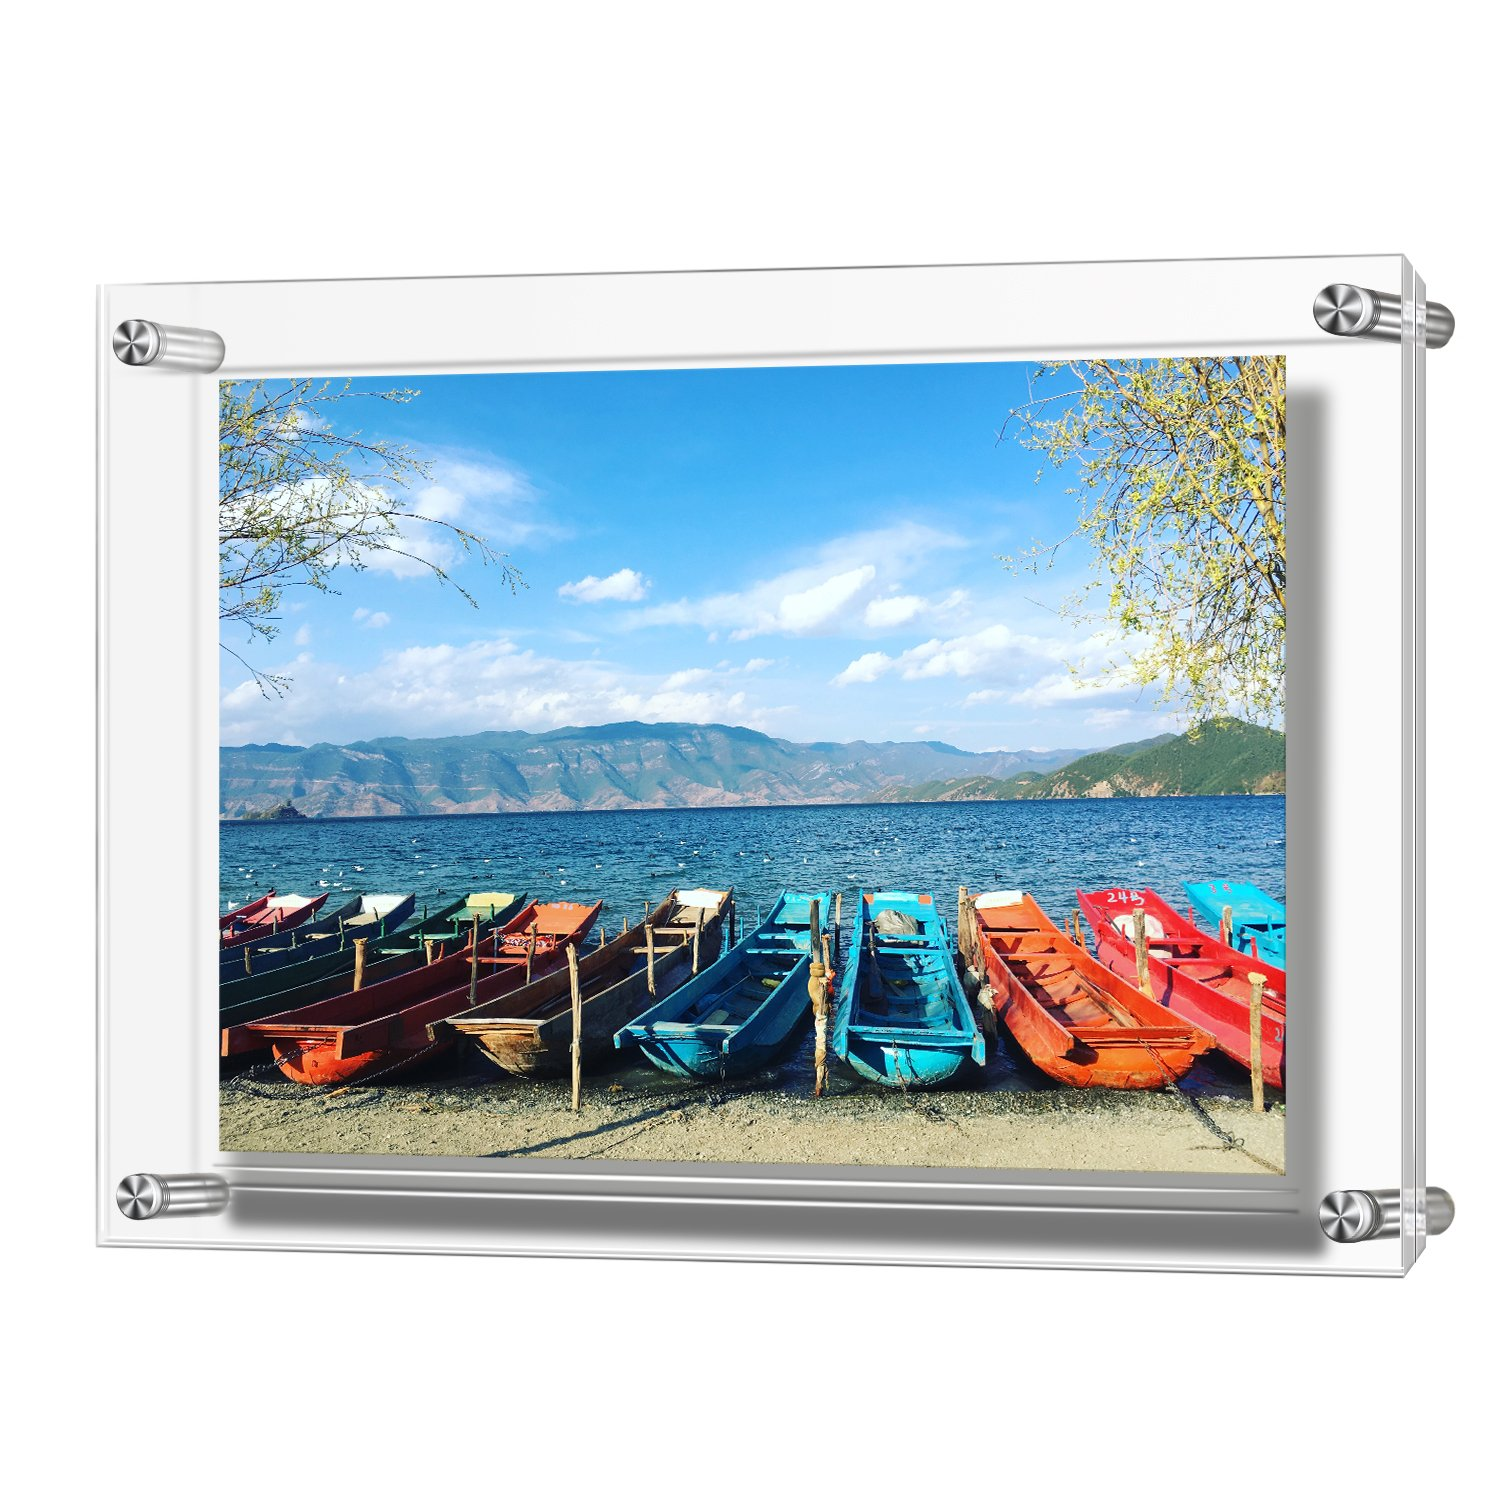 Acryl Wandhalter Bilderrahmen, Doppelte Panel Clear Hanging Photo ...